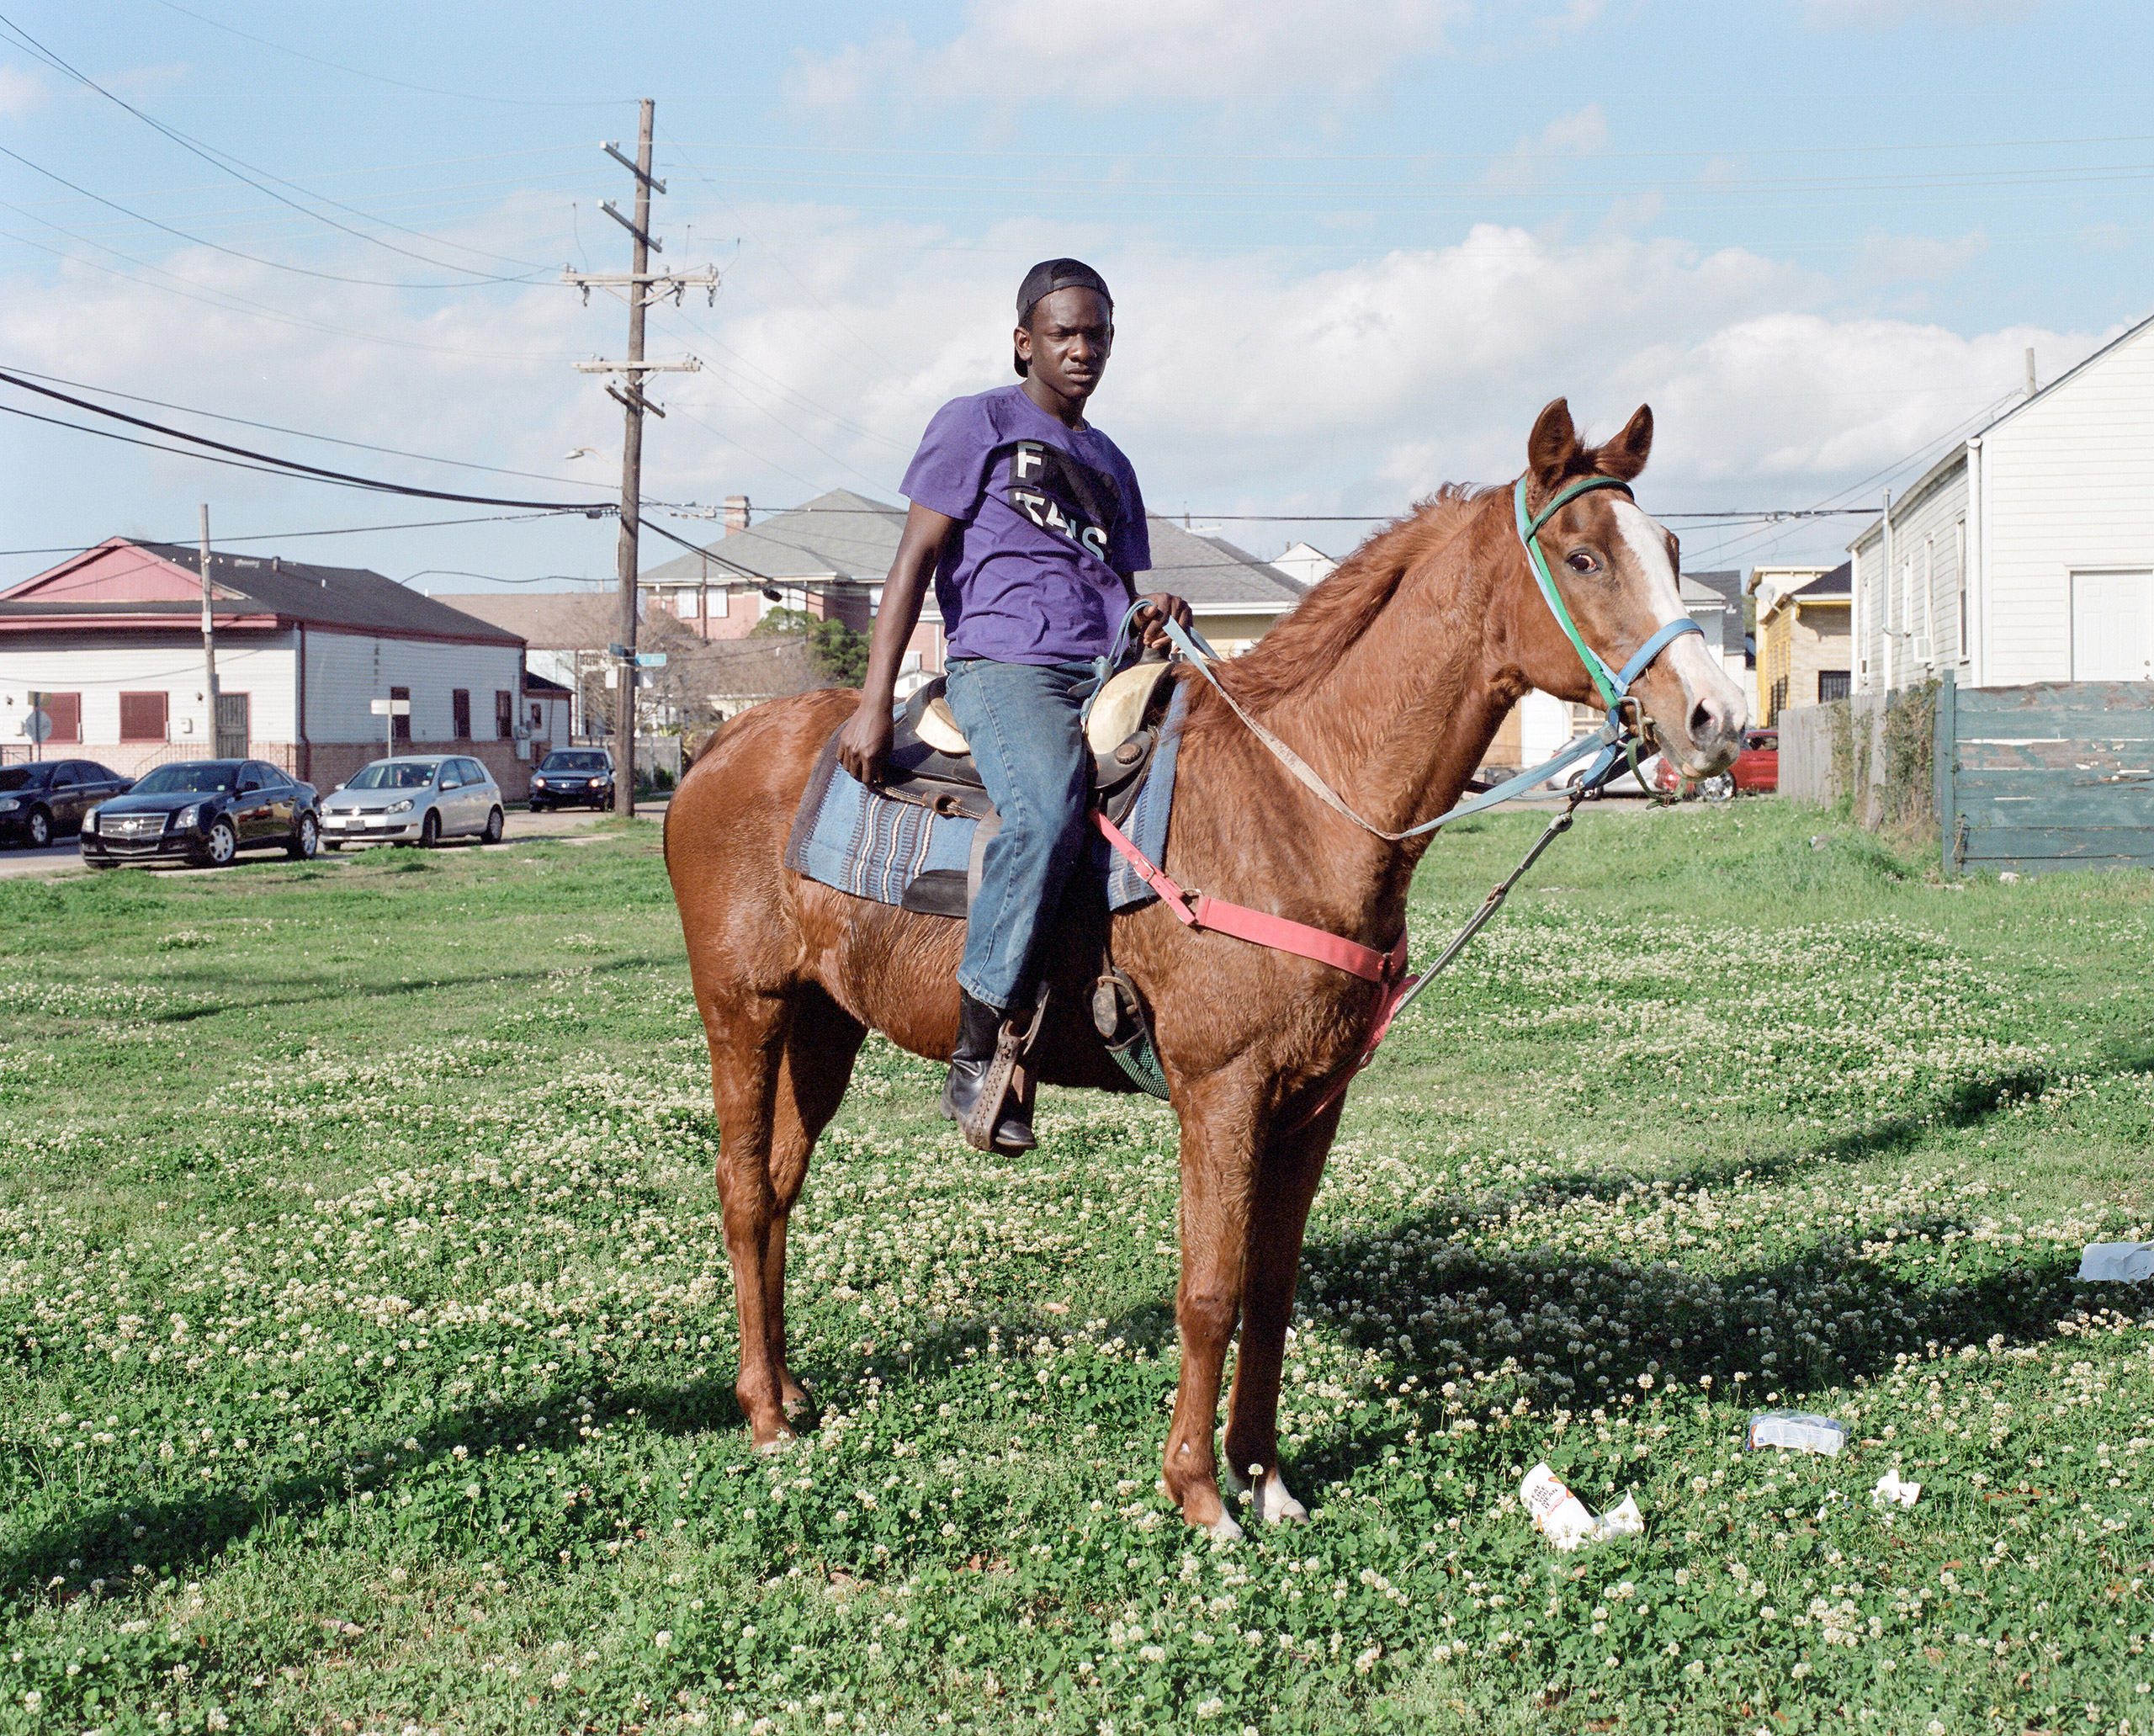 A boy poses on horseback at a Second Line in downtown New Orleans, La. 2016